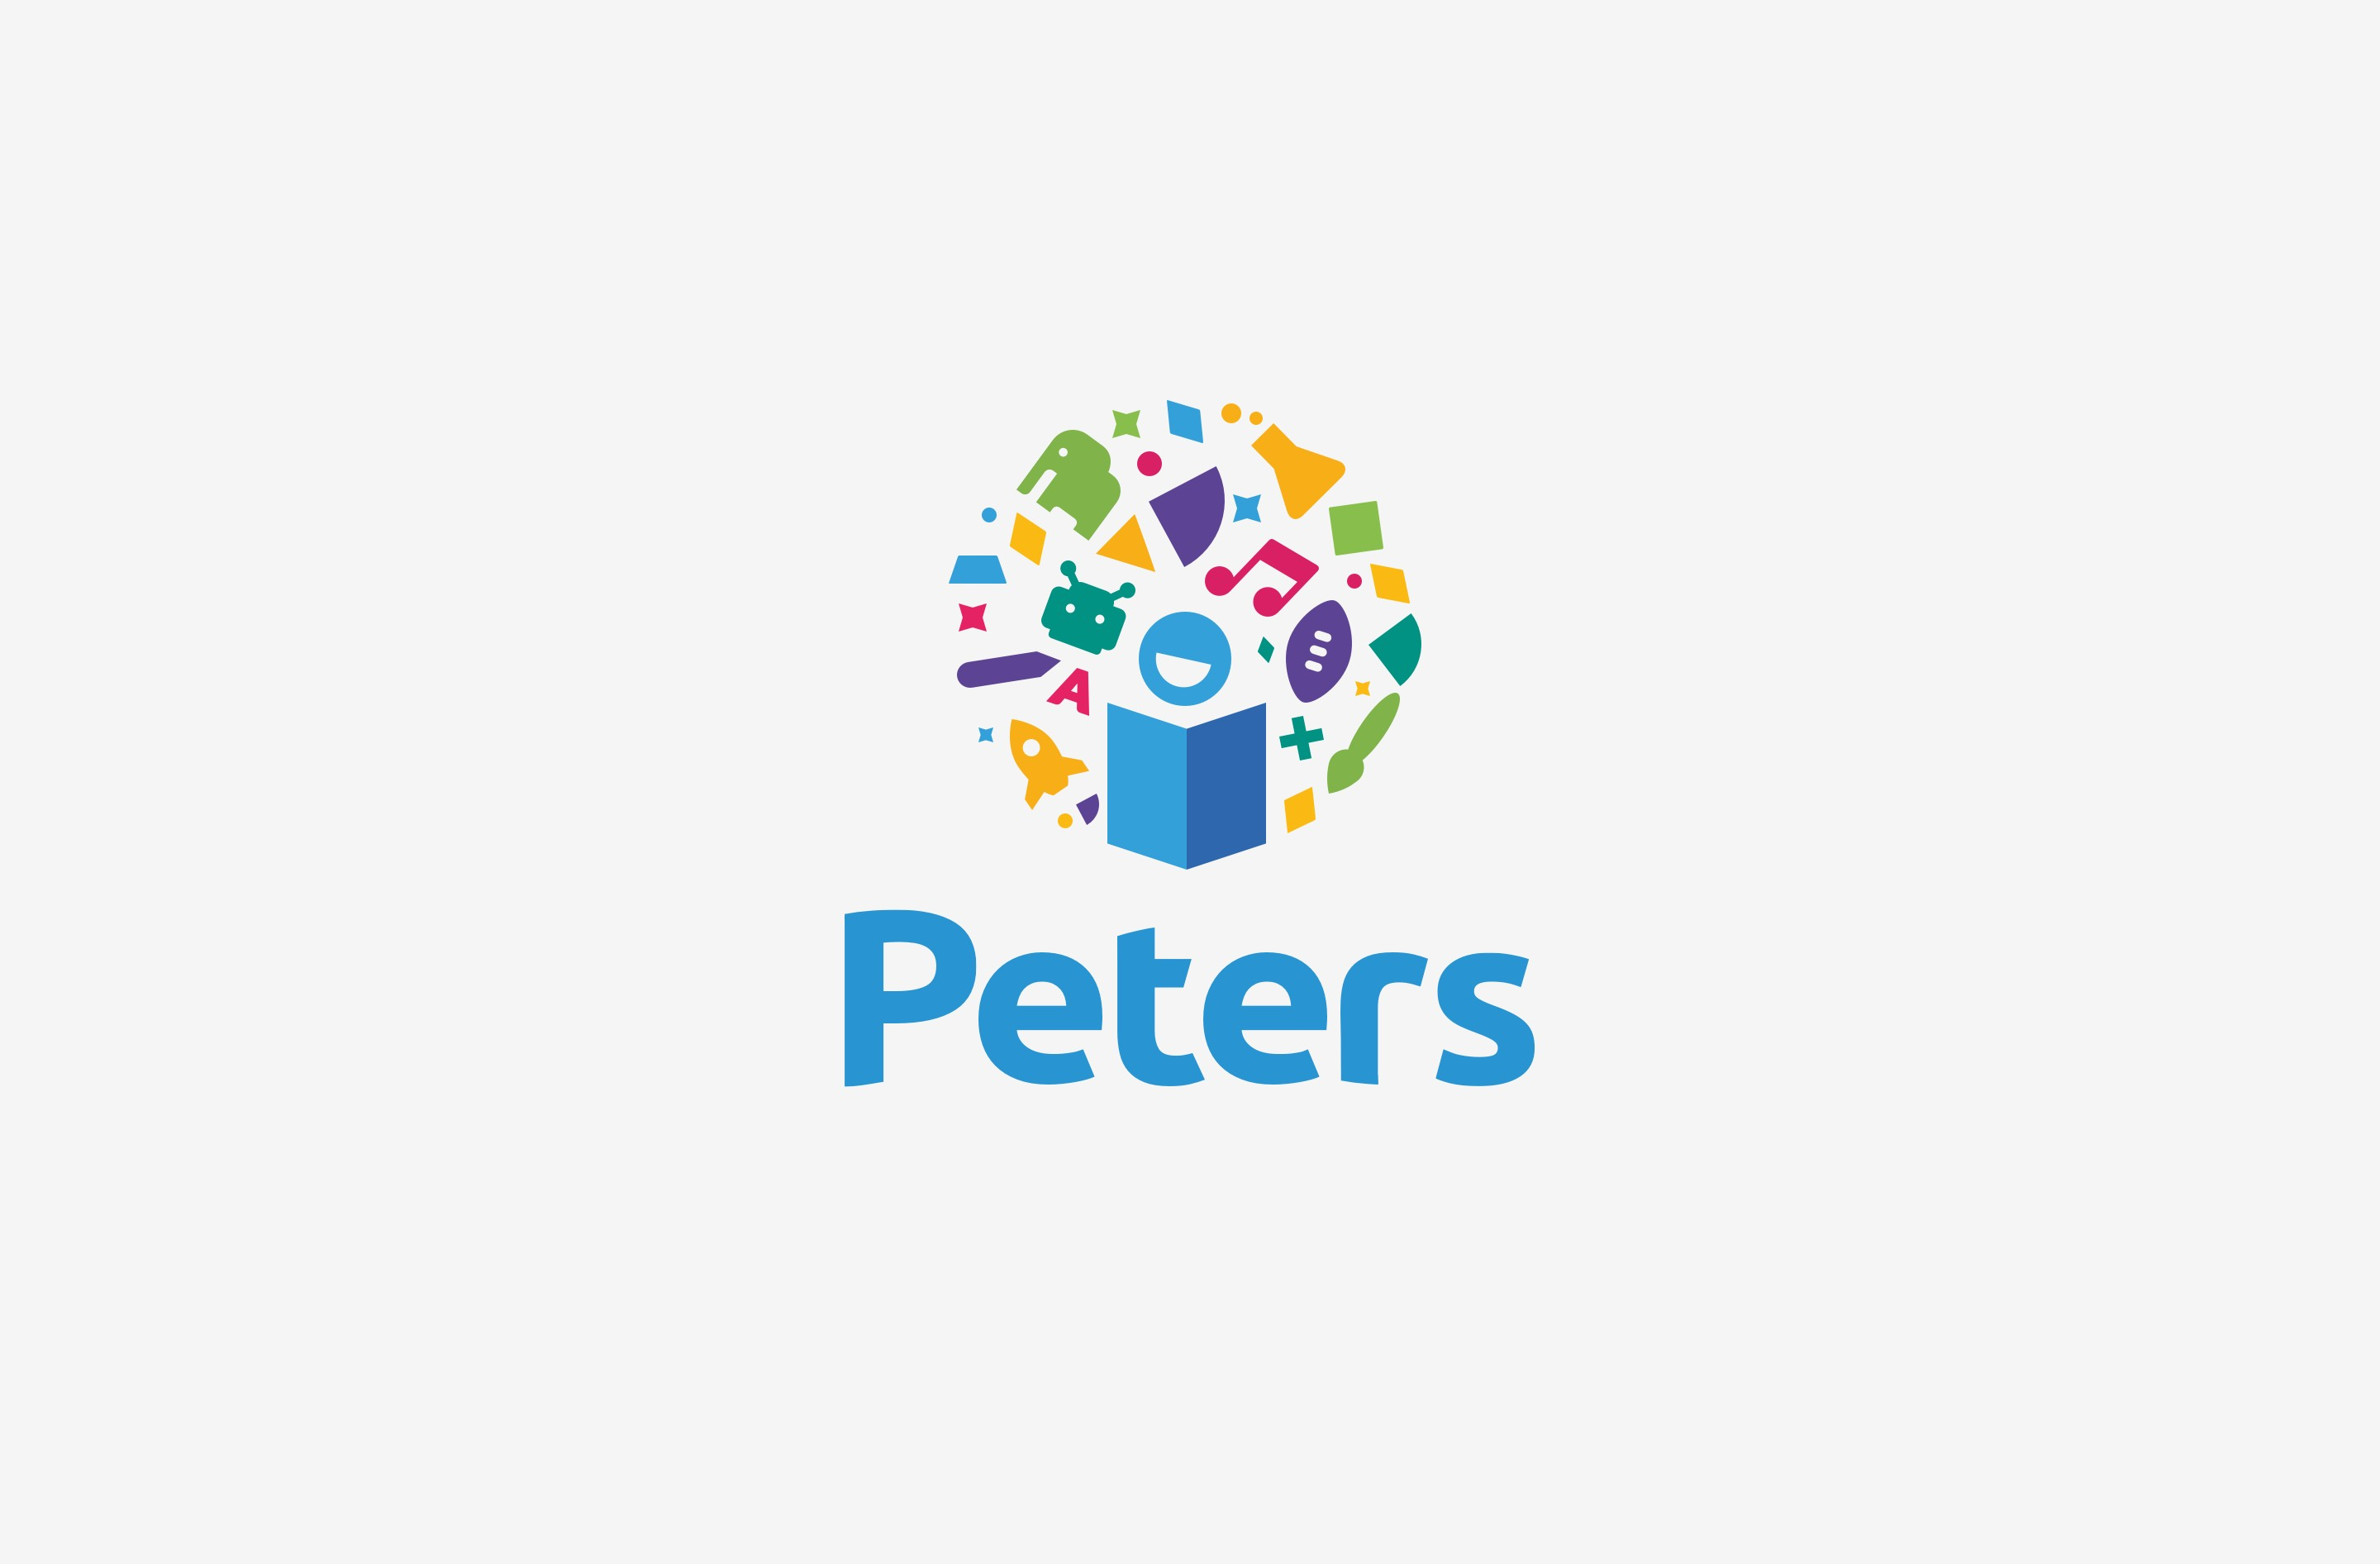 We created a colourful logo design for Peters